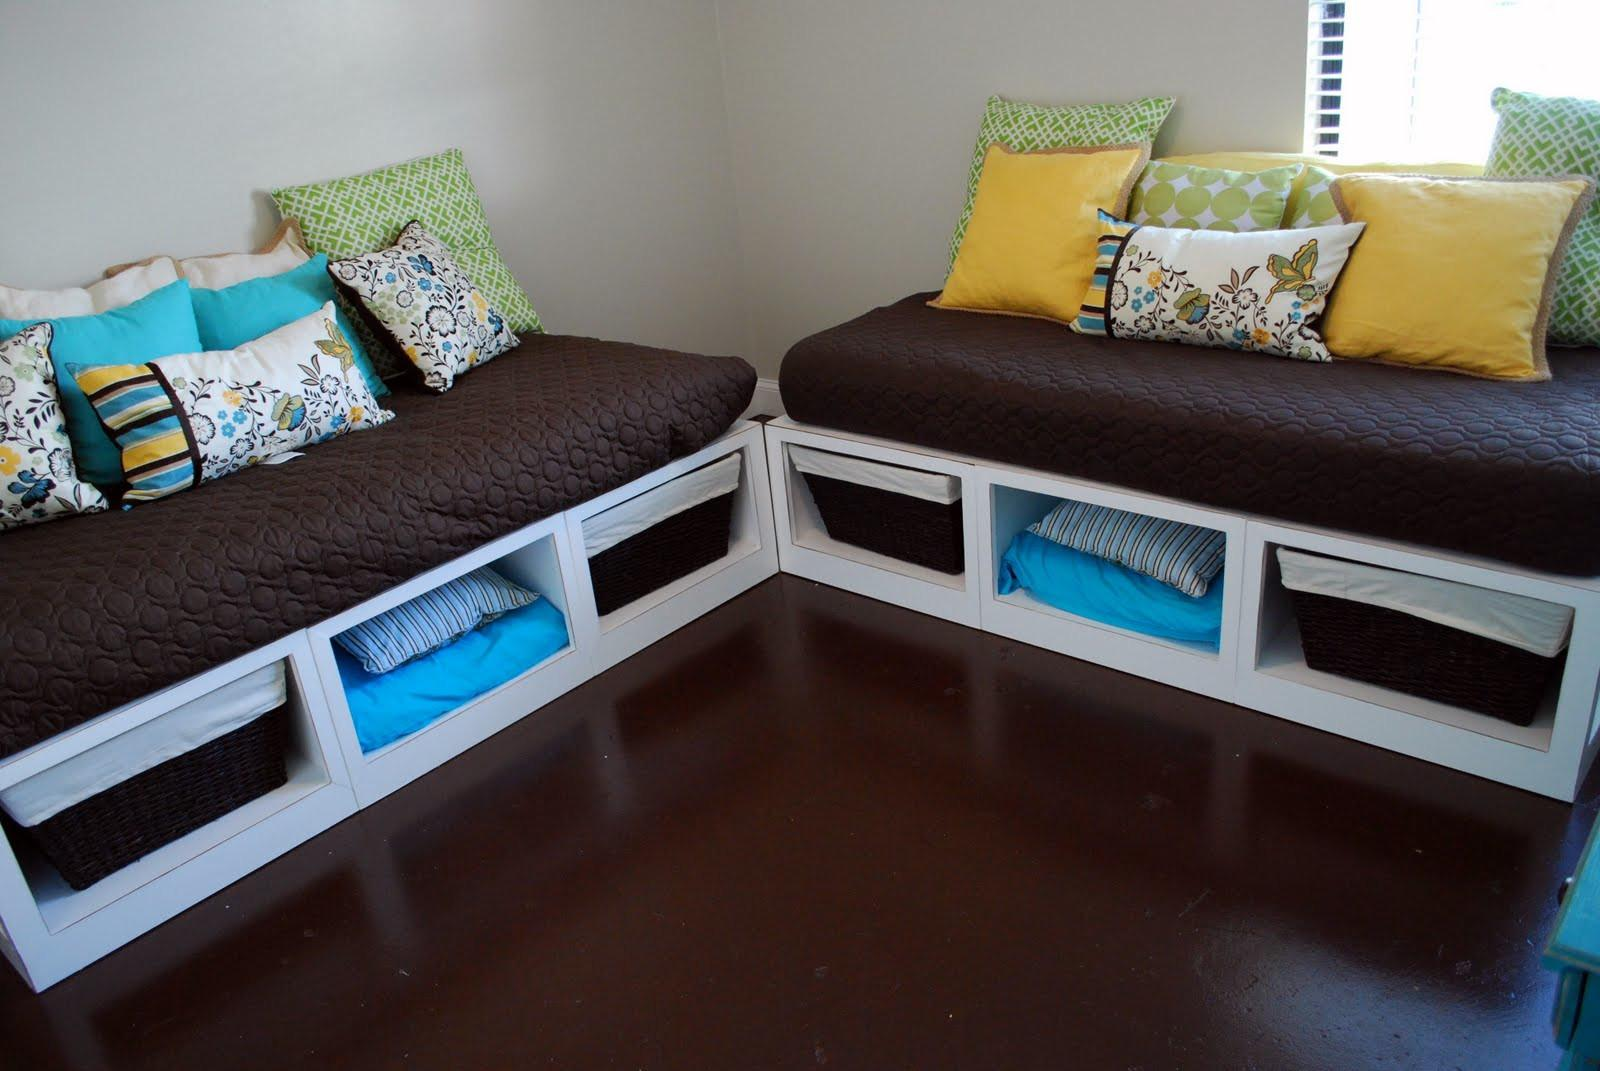 White Wooden Day Bed Without Headboard Using Dark